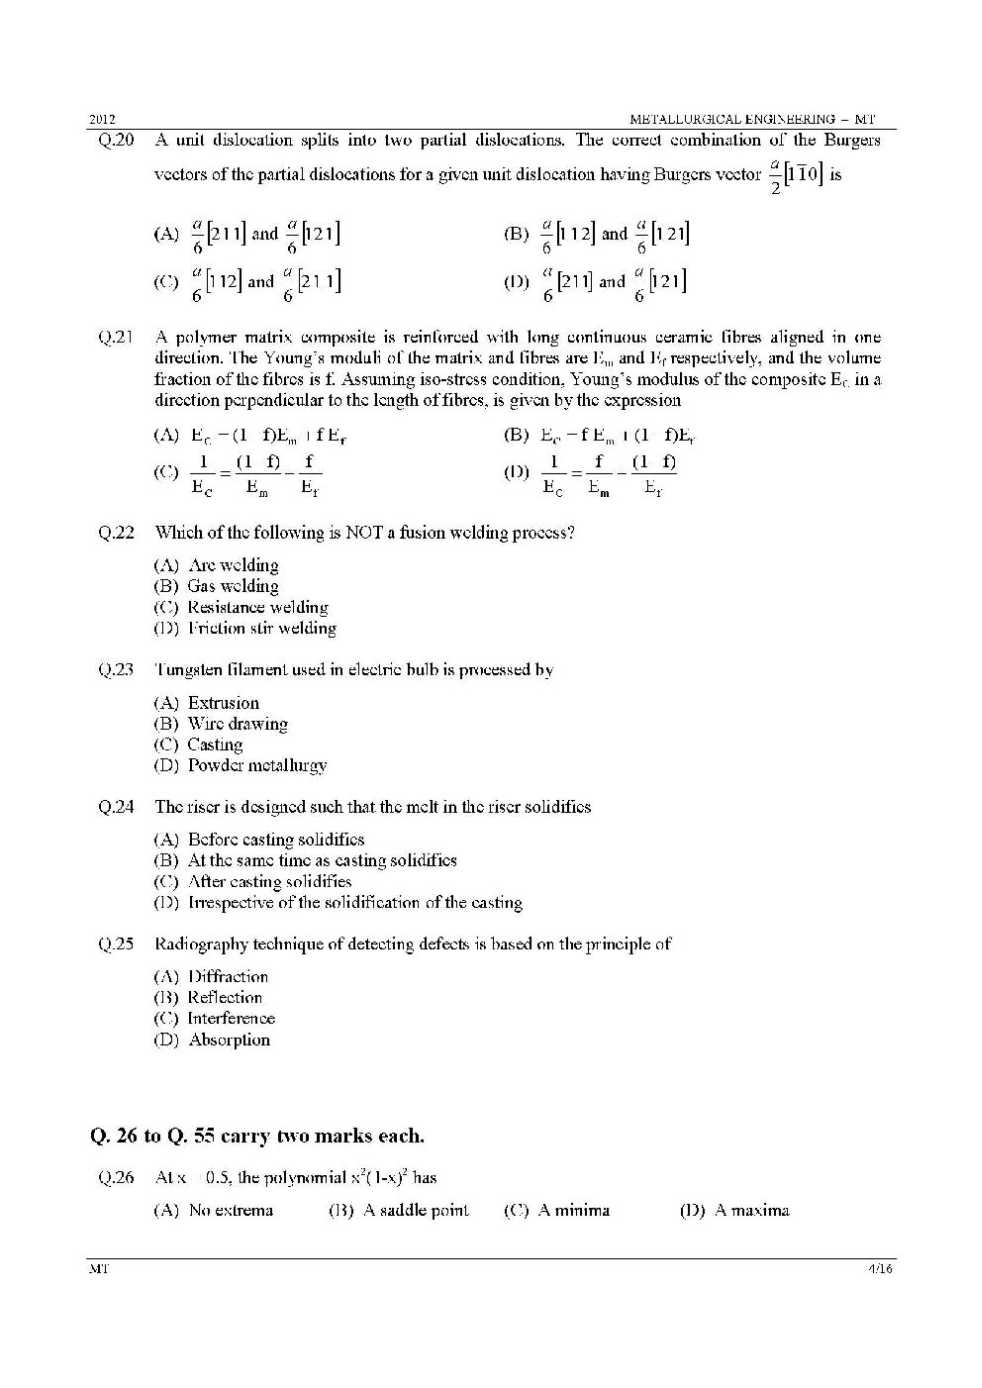 Gate Metallurgical Engineering Question Papers With Solutions 2018 Fusion Welding Diagram Which One Of The Following Can Give Information About Corrosion Rate A Pourbaix B Polarization Technique C Emf Series D Galvanic